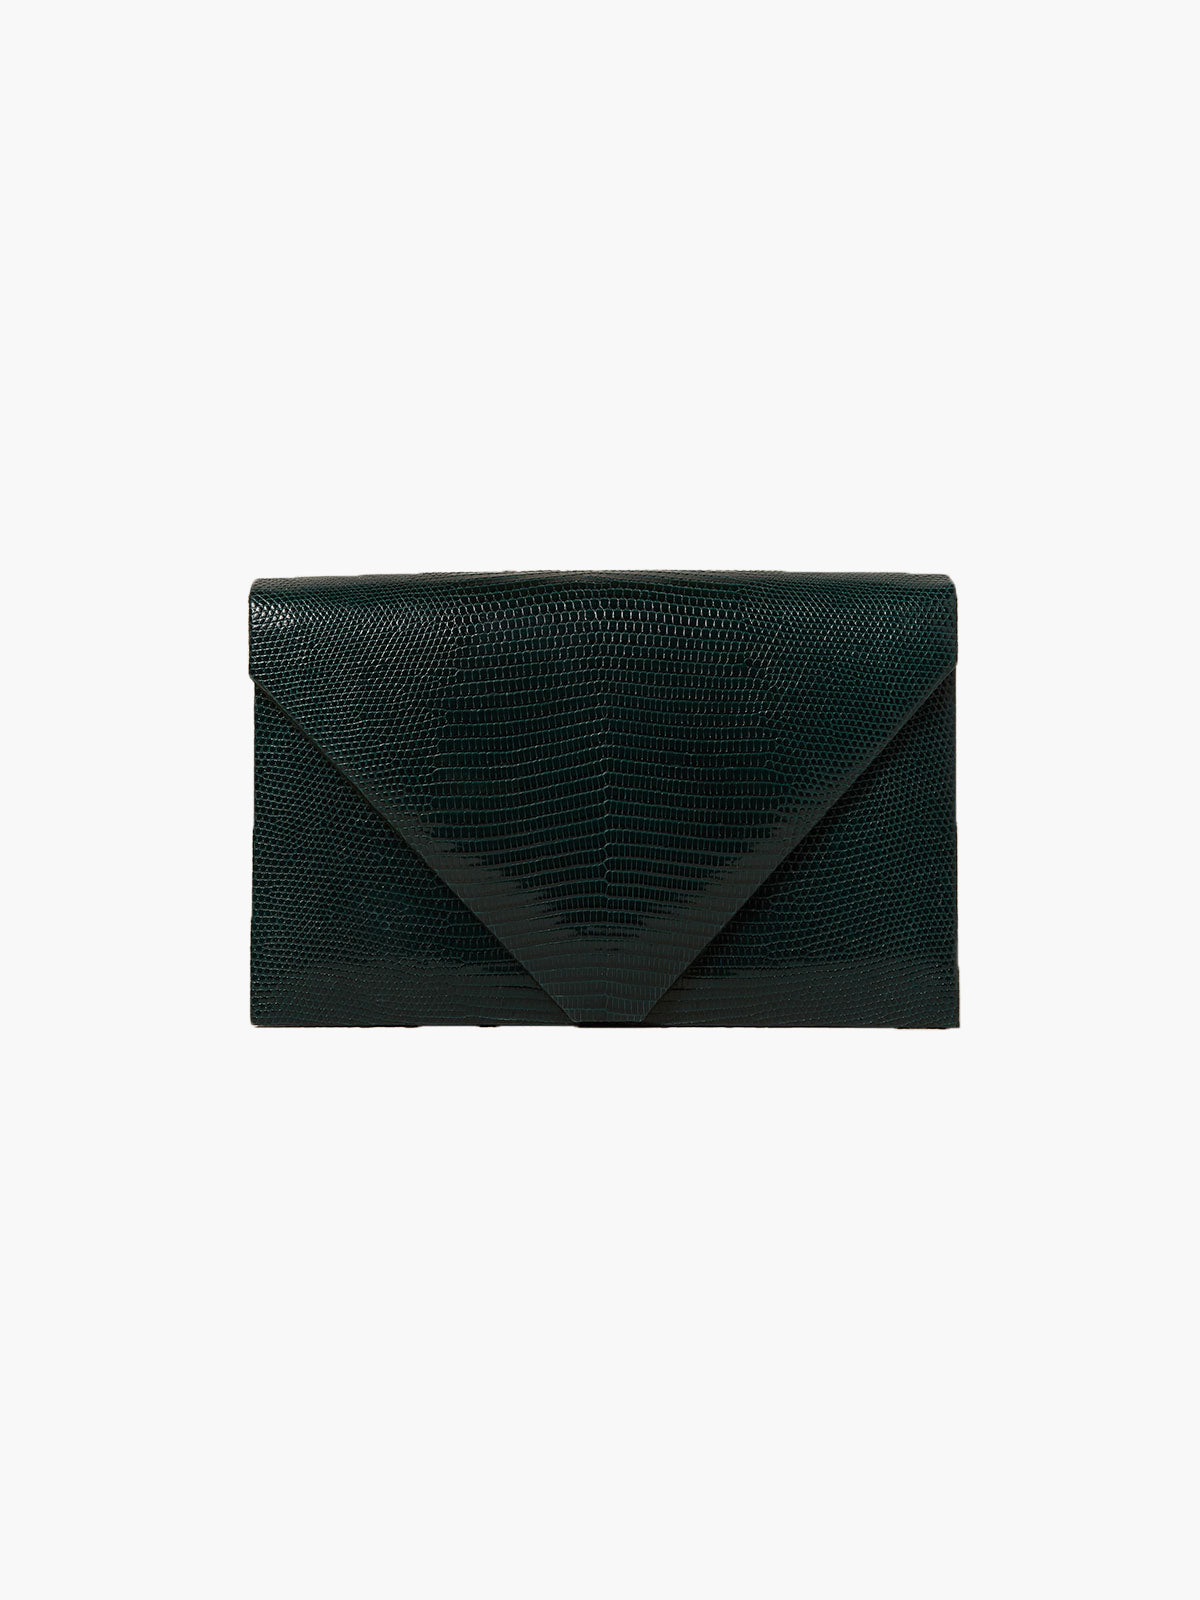 The Envelope Clutch | Emerald